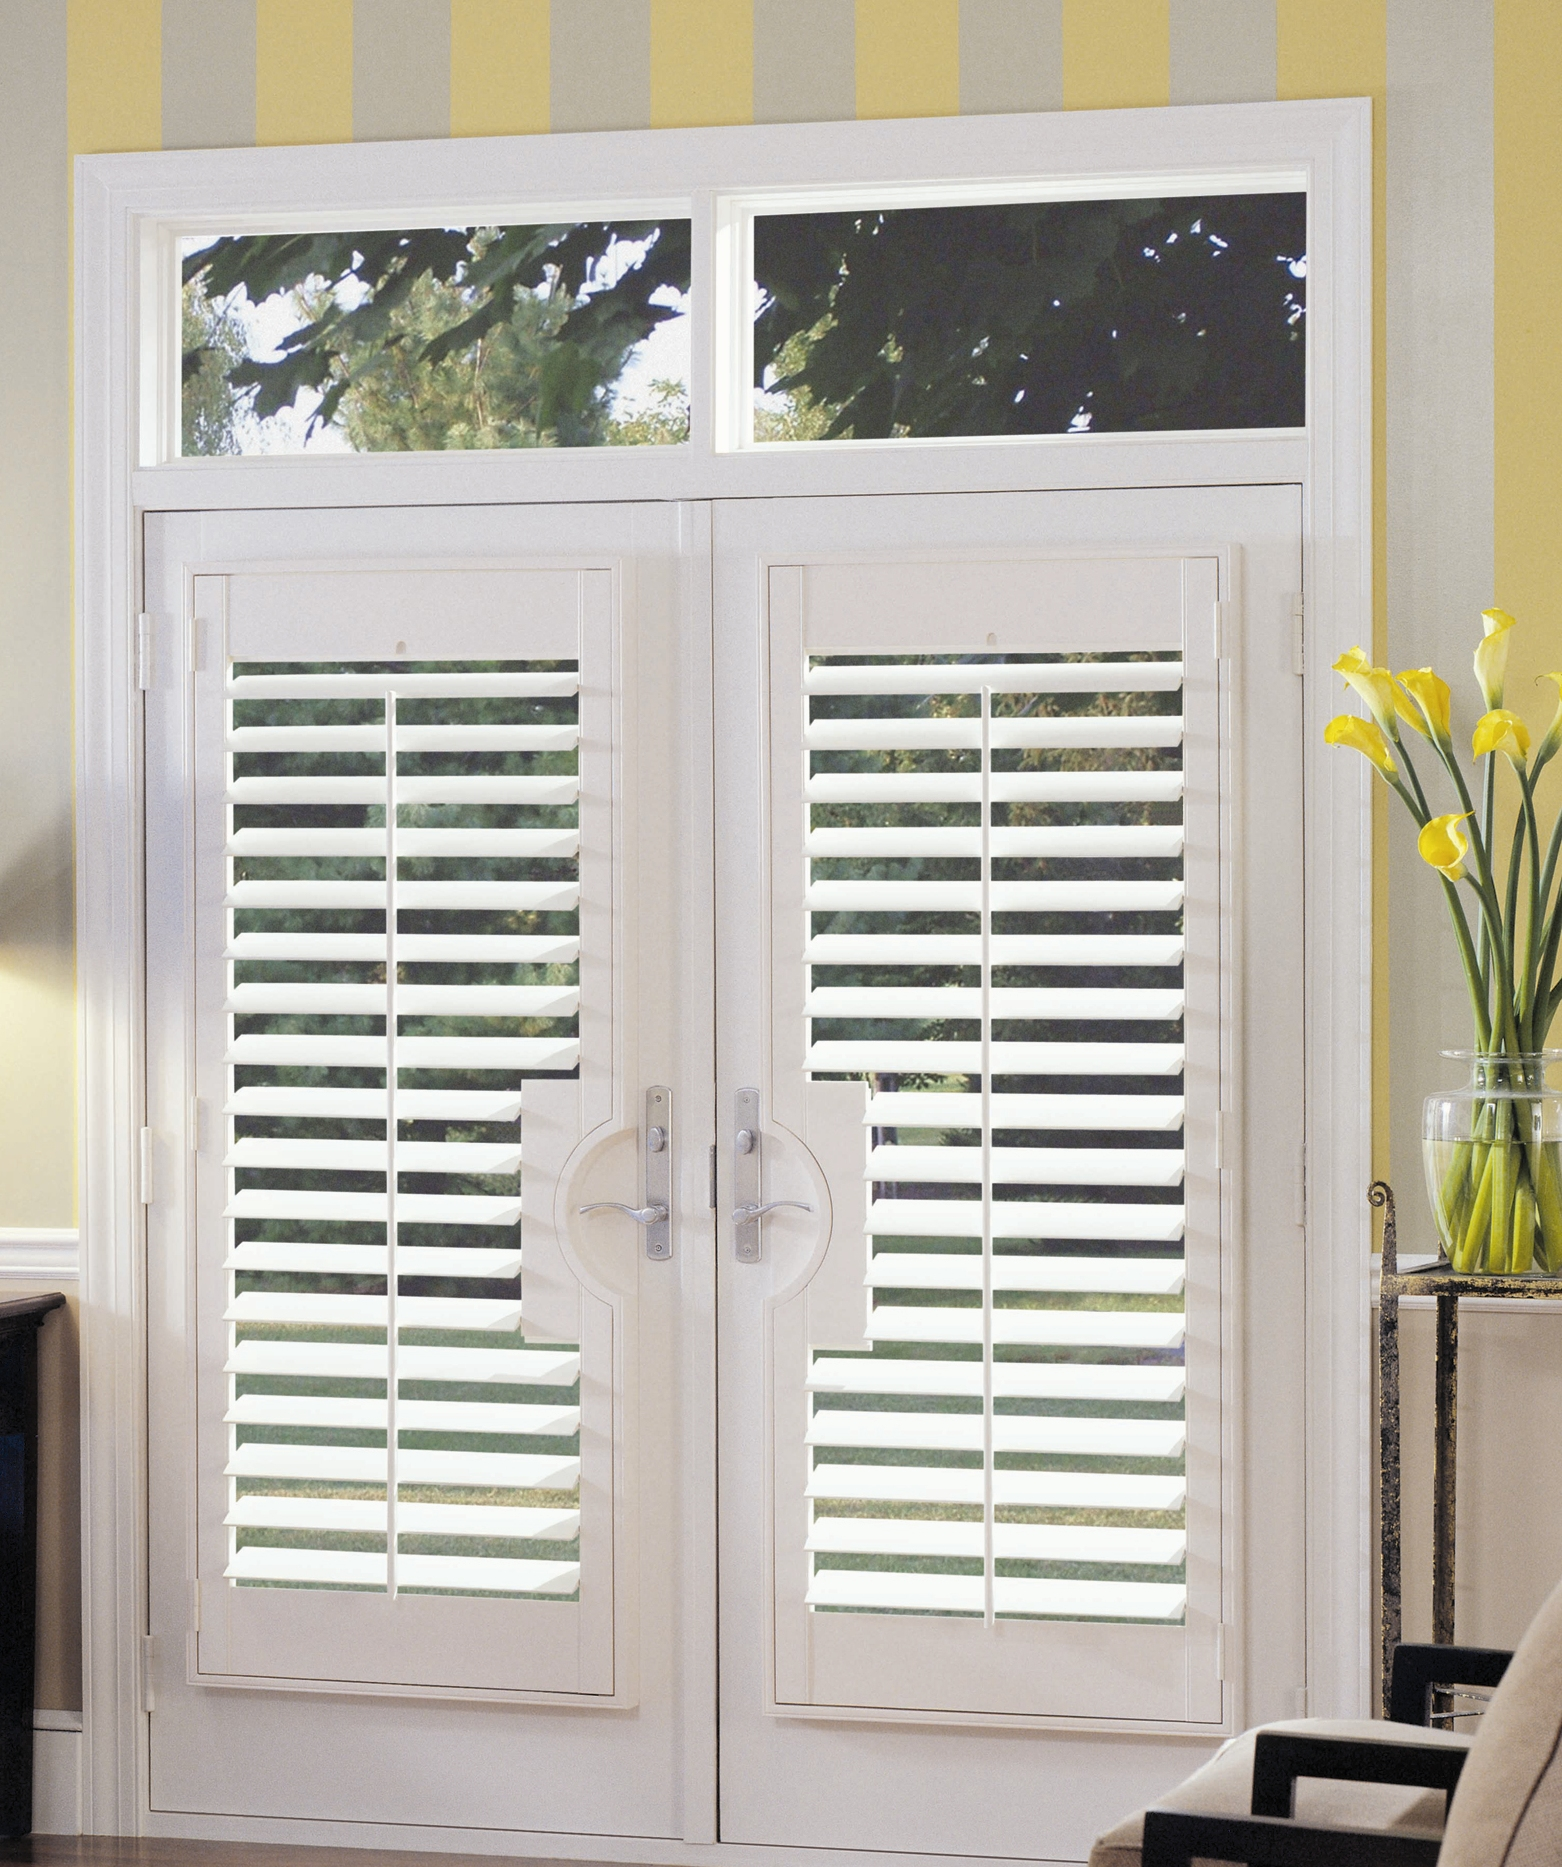 Plantation shutters miami wood plantation shutters miami poly plantation shutters miami wood plantation shutters miami poly plantation shutters miami regency shutters and blinds inc rubansaba